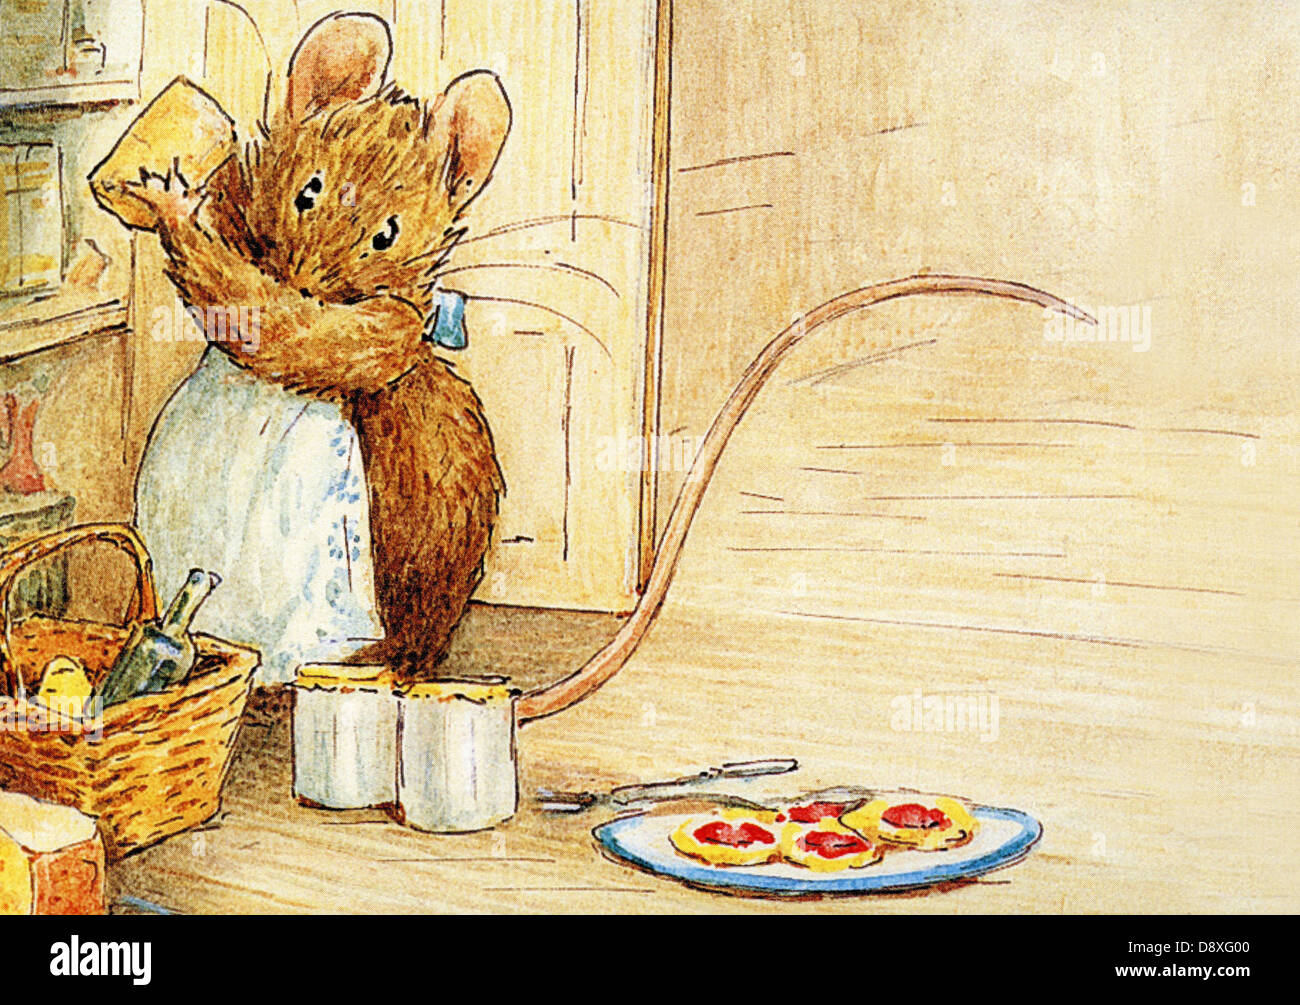 Beatrix Potter Stock Photos & Beatrix Potter Stock Images - Alamy